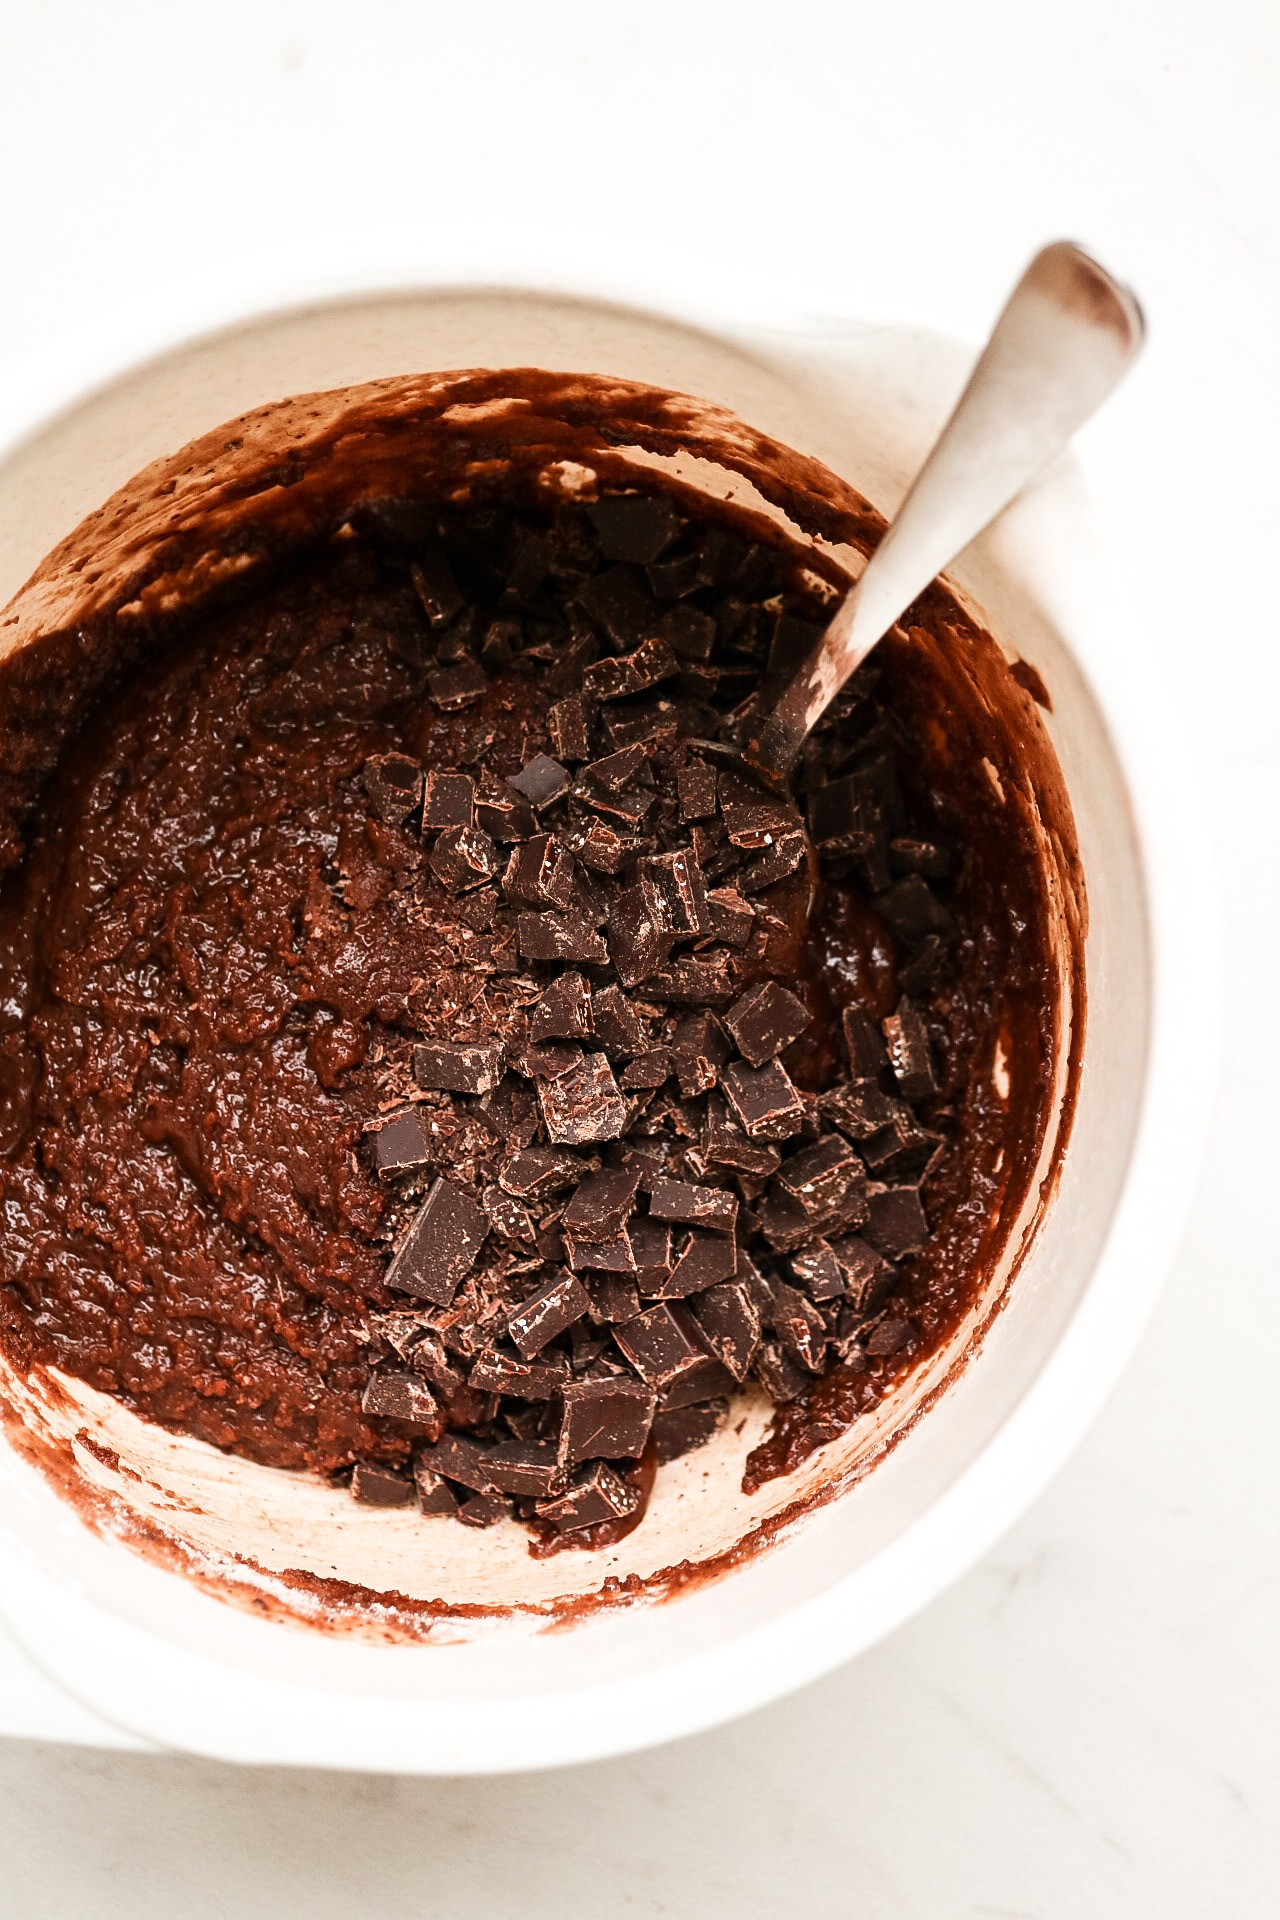 The cookie batter, with the added chopped chocolate. All that's needed is to fold in the chocolate!